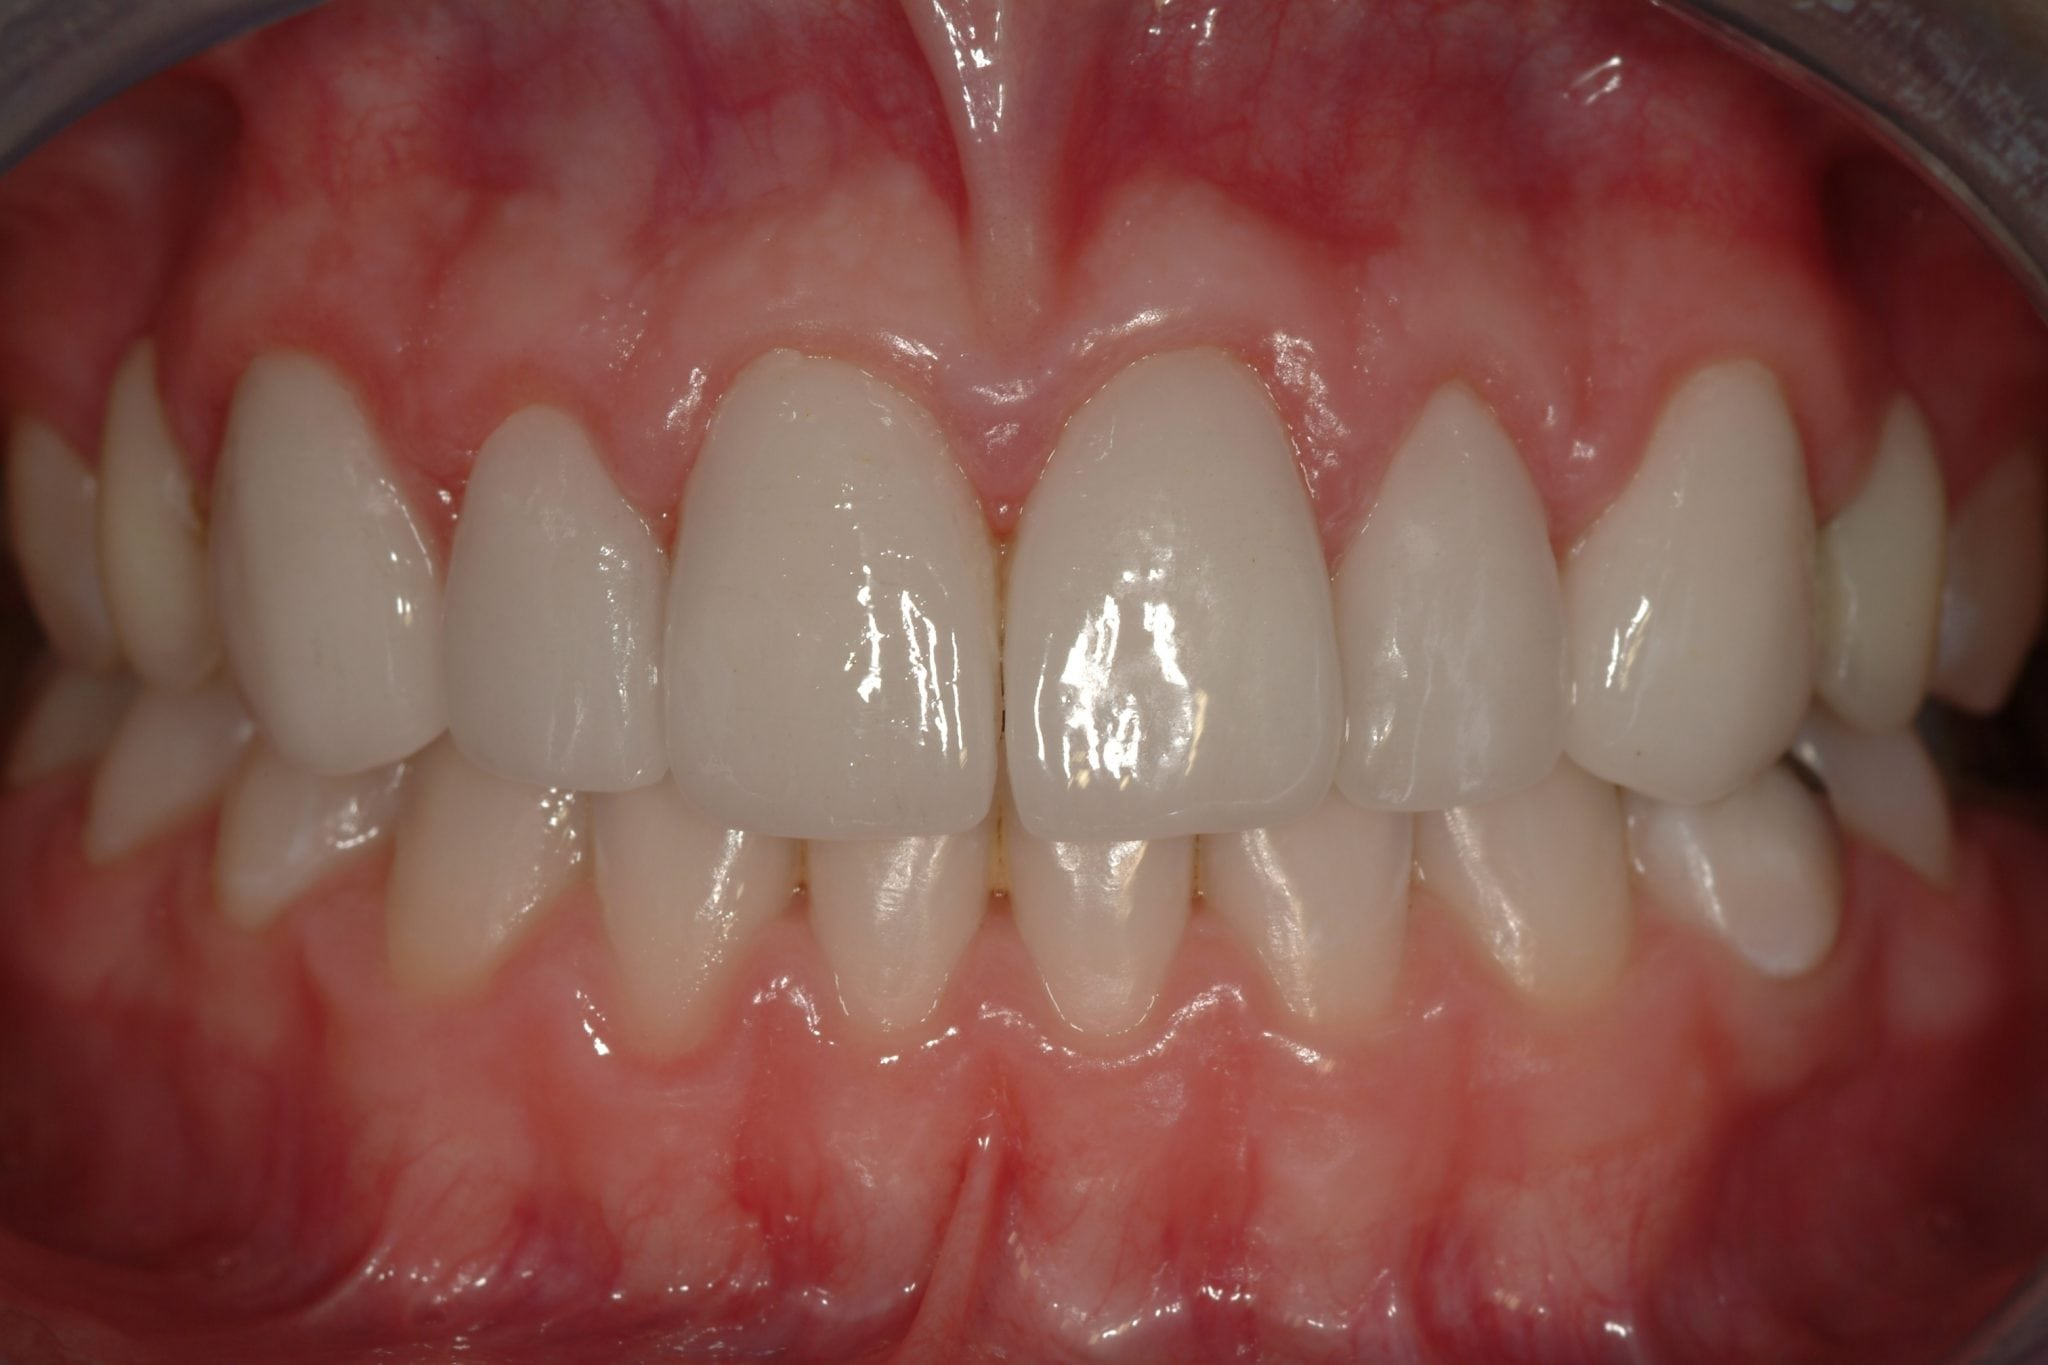 Smile Makeover Dental Crowns After treatment Pictures